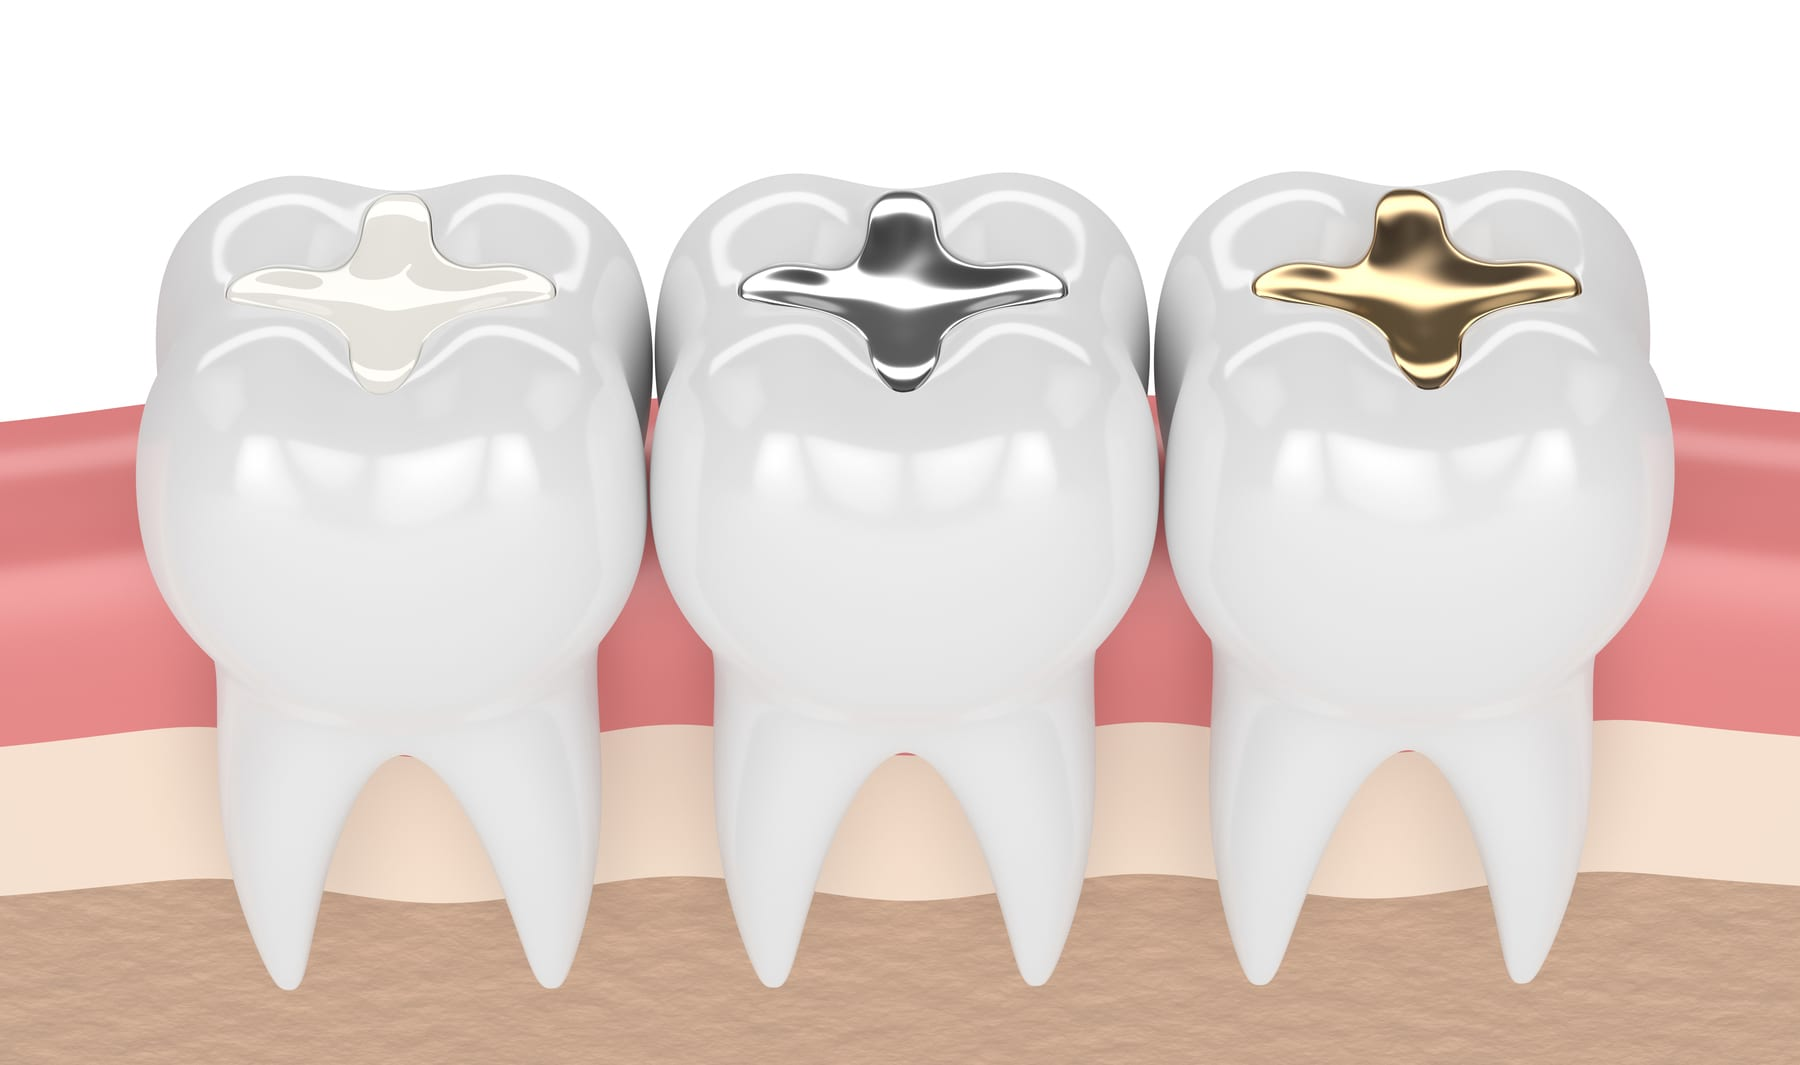 teeth with gold, amalgam and composite inlay dental filling in gums